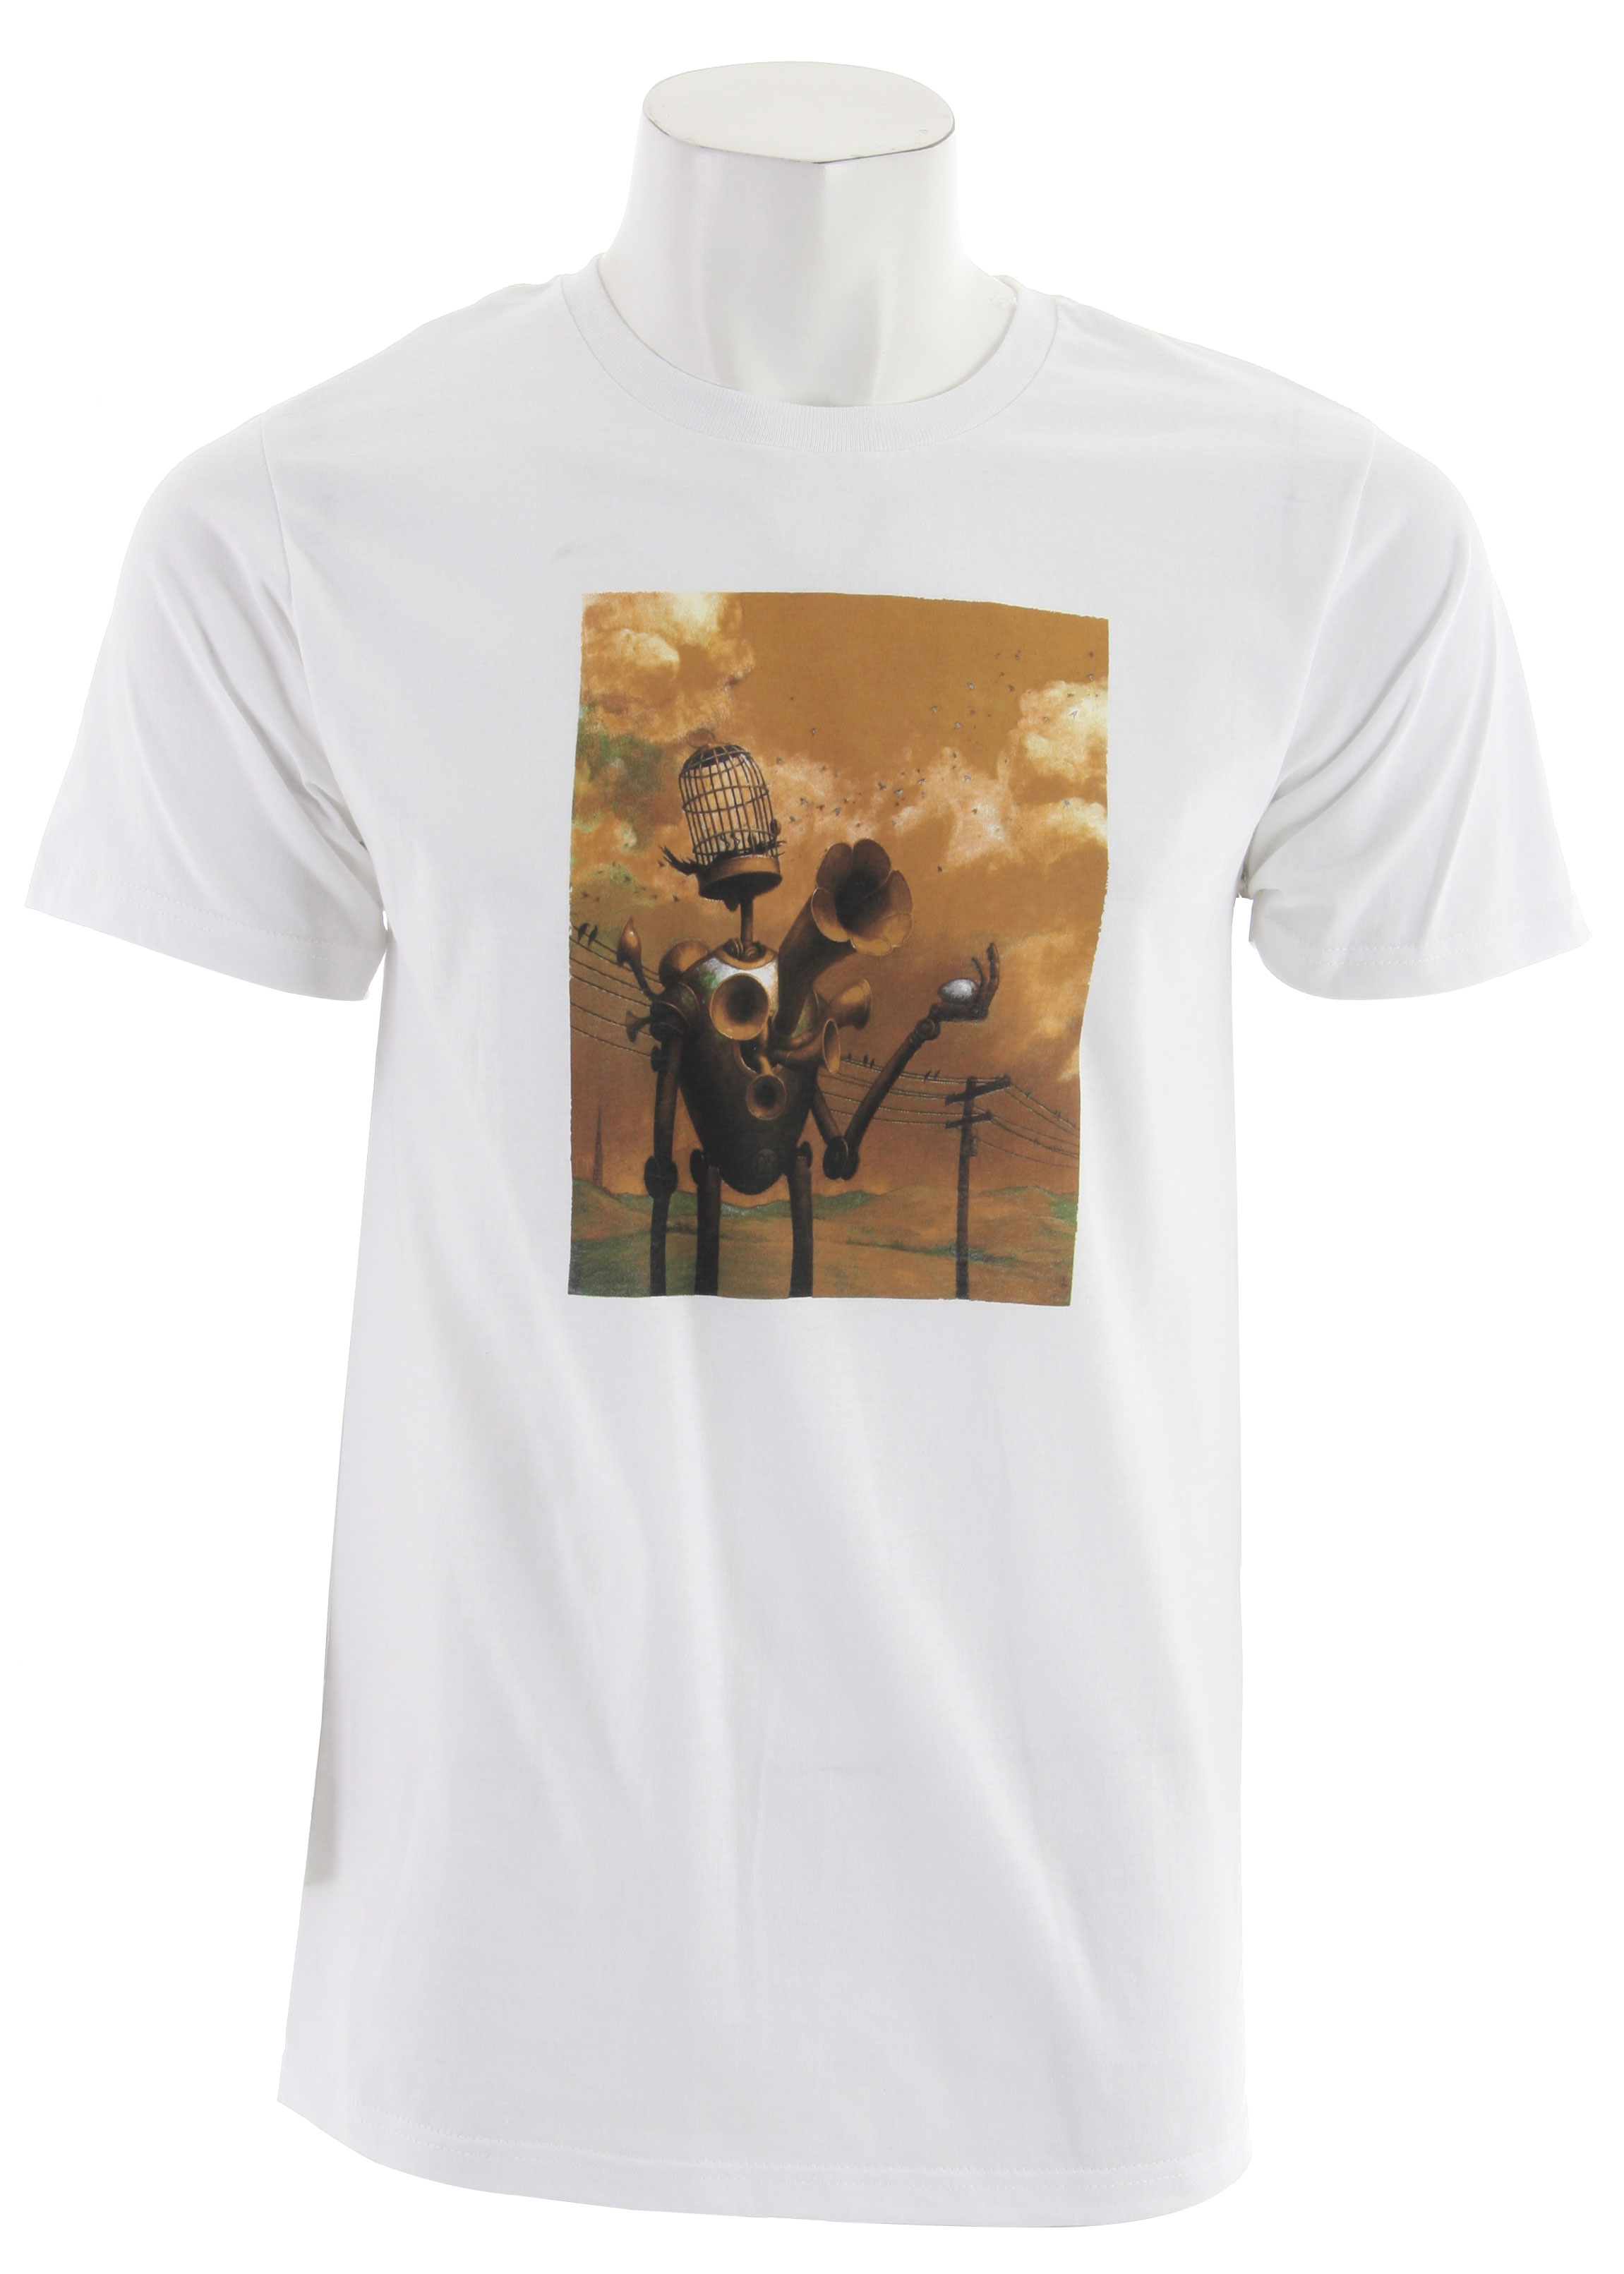 Planet Earth Artist T-Shirt - $11.75